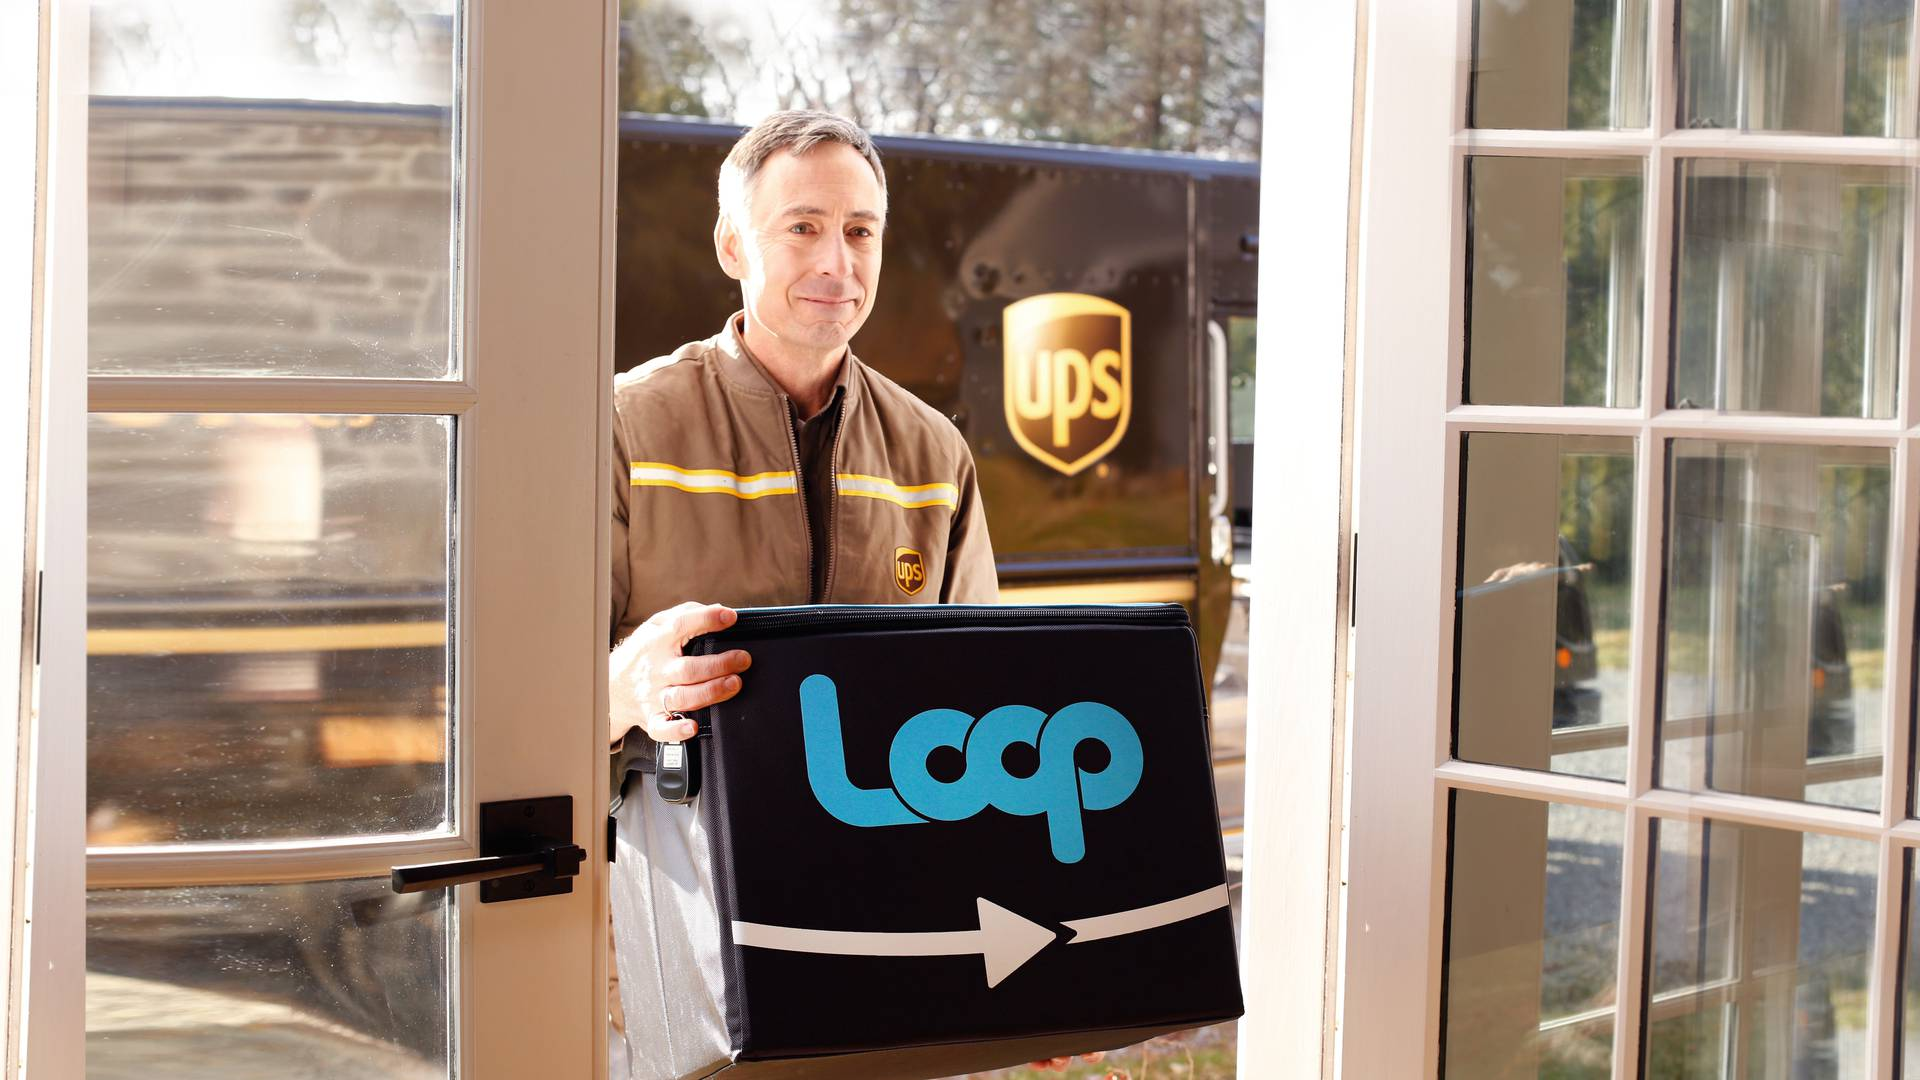 Delivery man delivering loop package